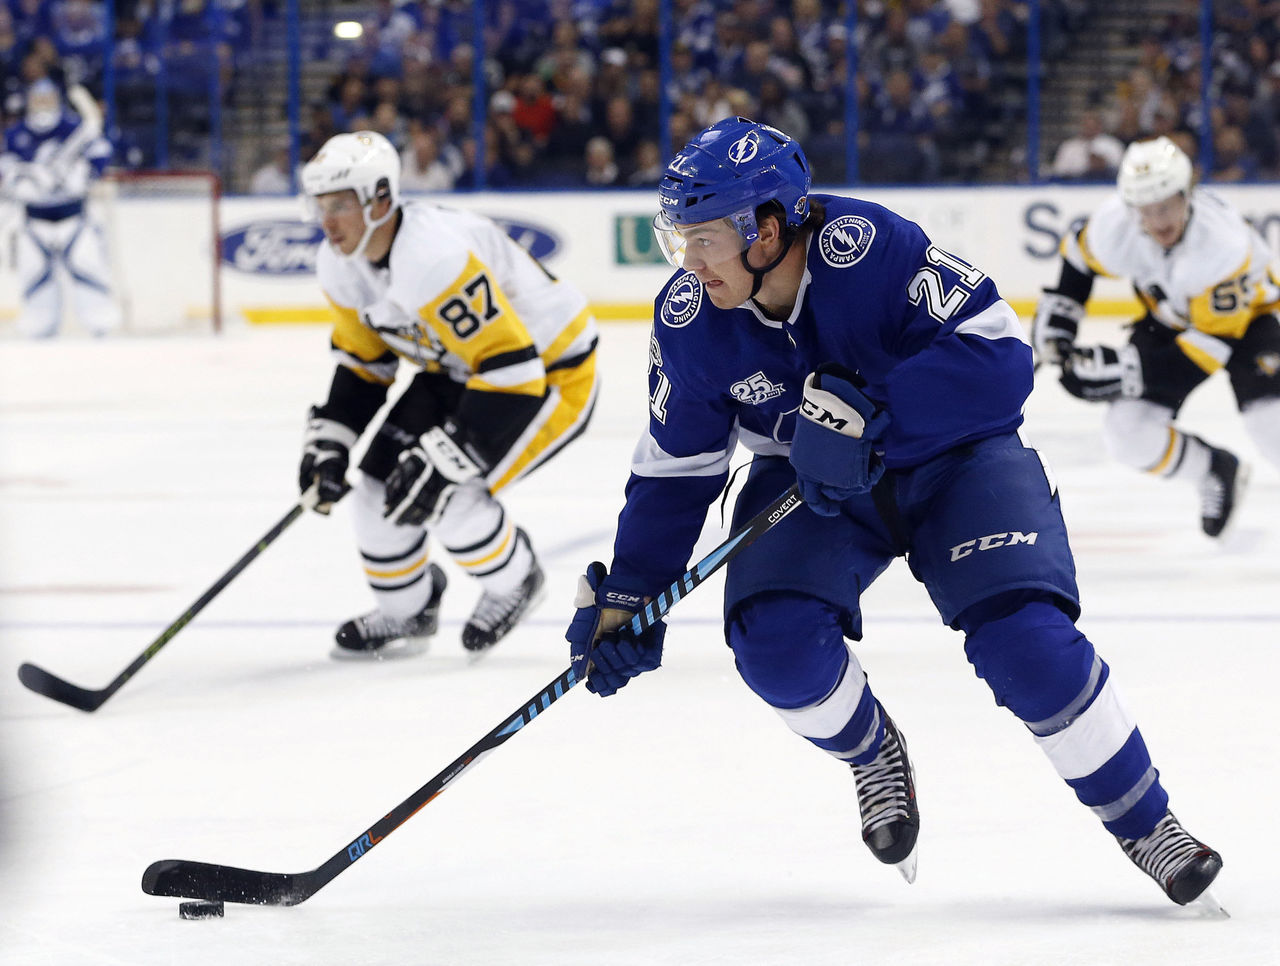 Cropped 2017 10 13t004756z 1703729823 nocid rtrmadp 3 nhl pittsburgh penguins at tampa bay lightning